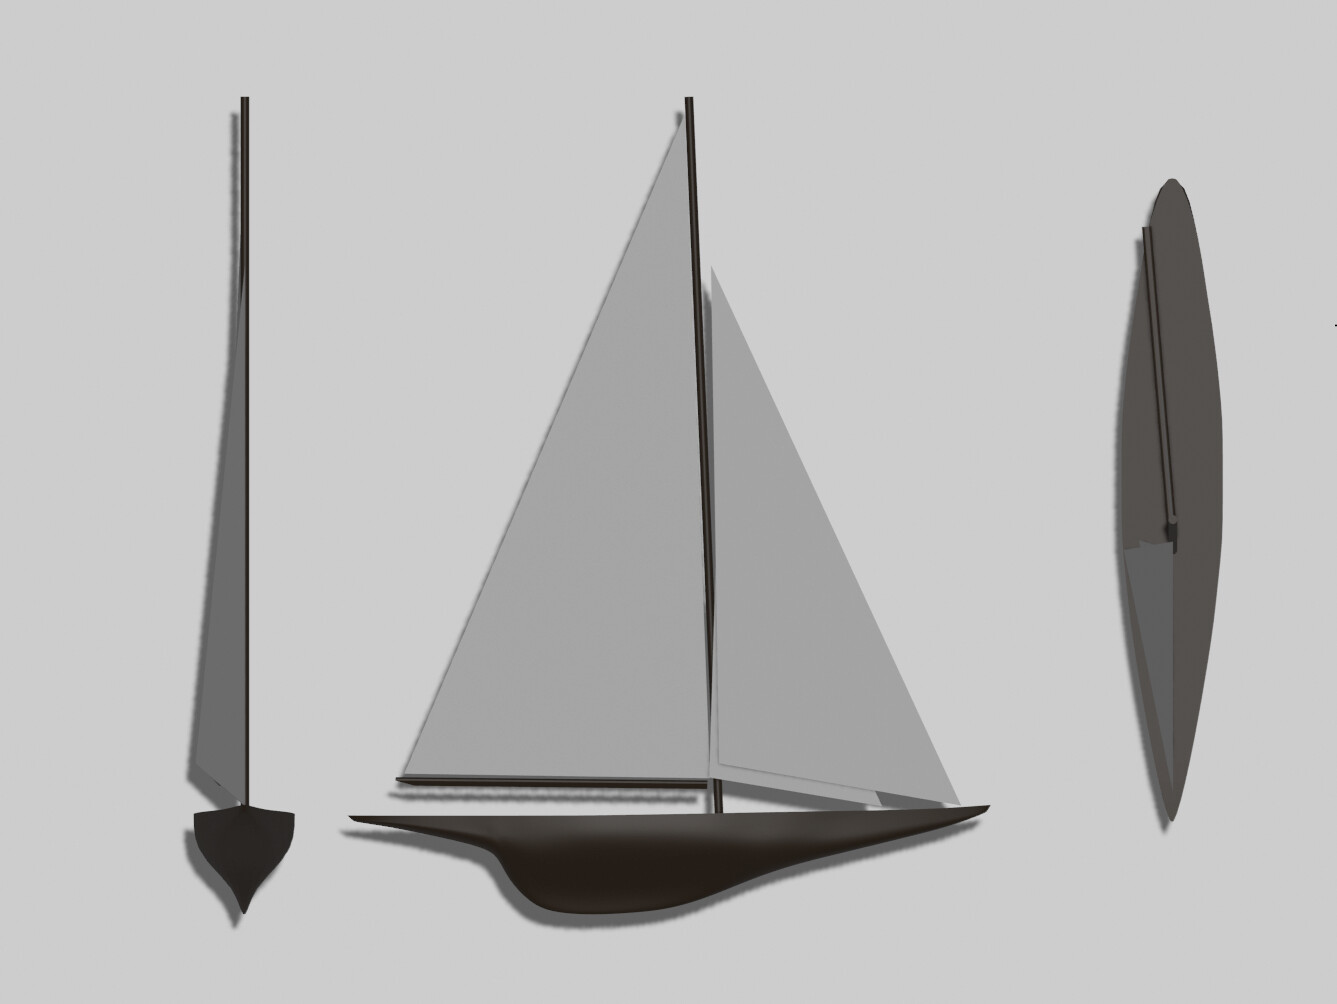 I modeled the boats after a J-class racing yacht called 'Ranger' that won the America's cup in 1937 not far from RISD in Newport.